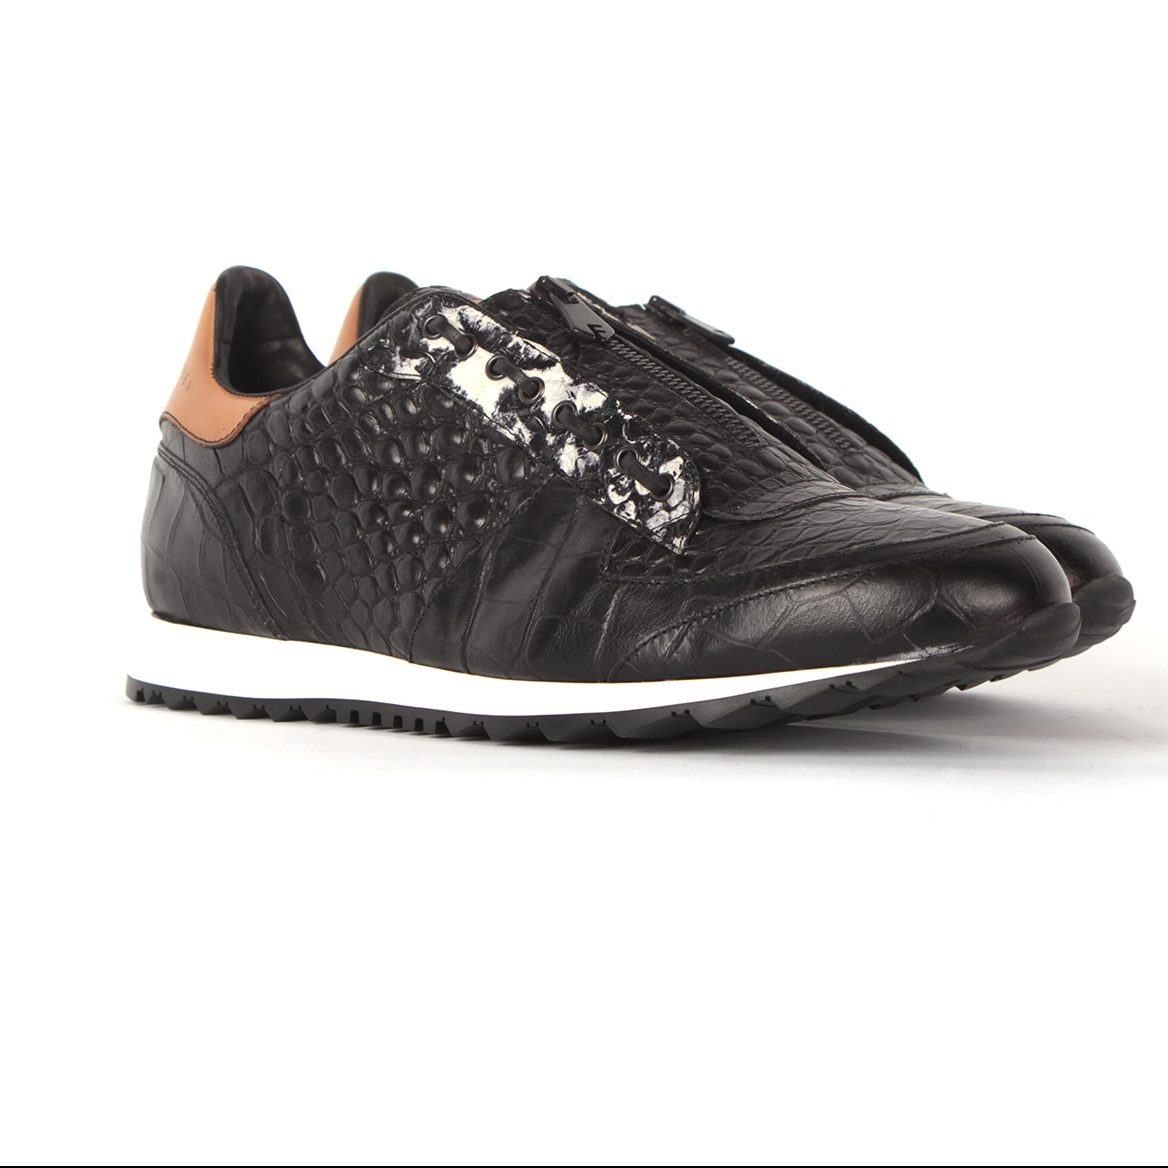 Handcrafted fashion runners for men